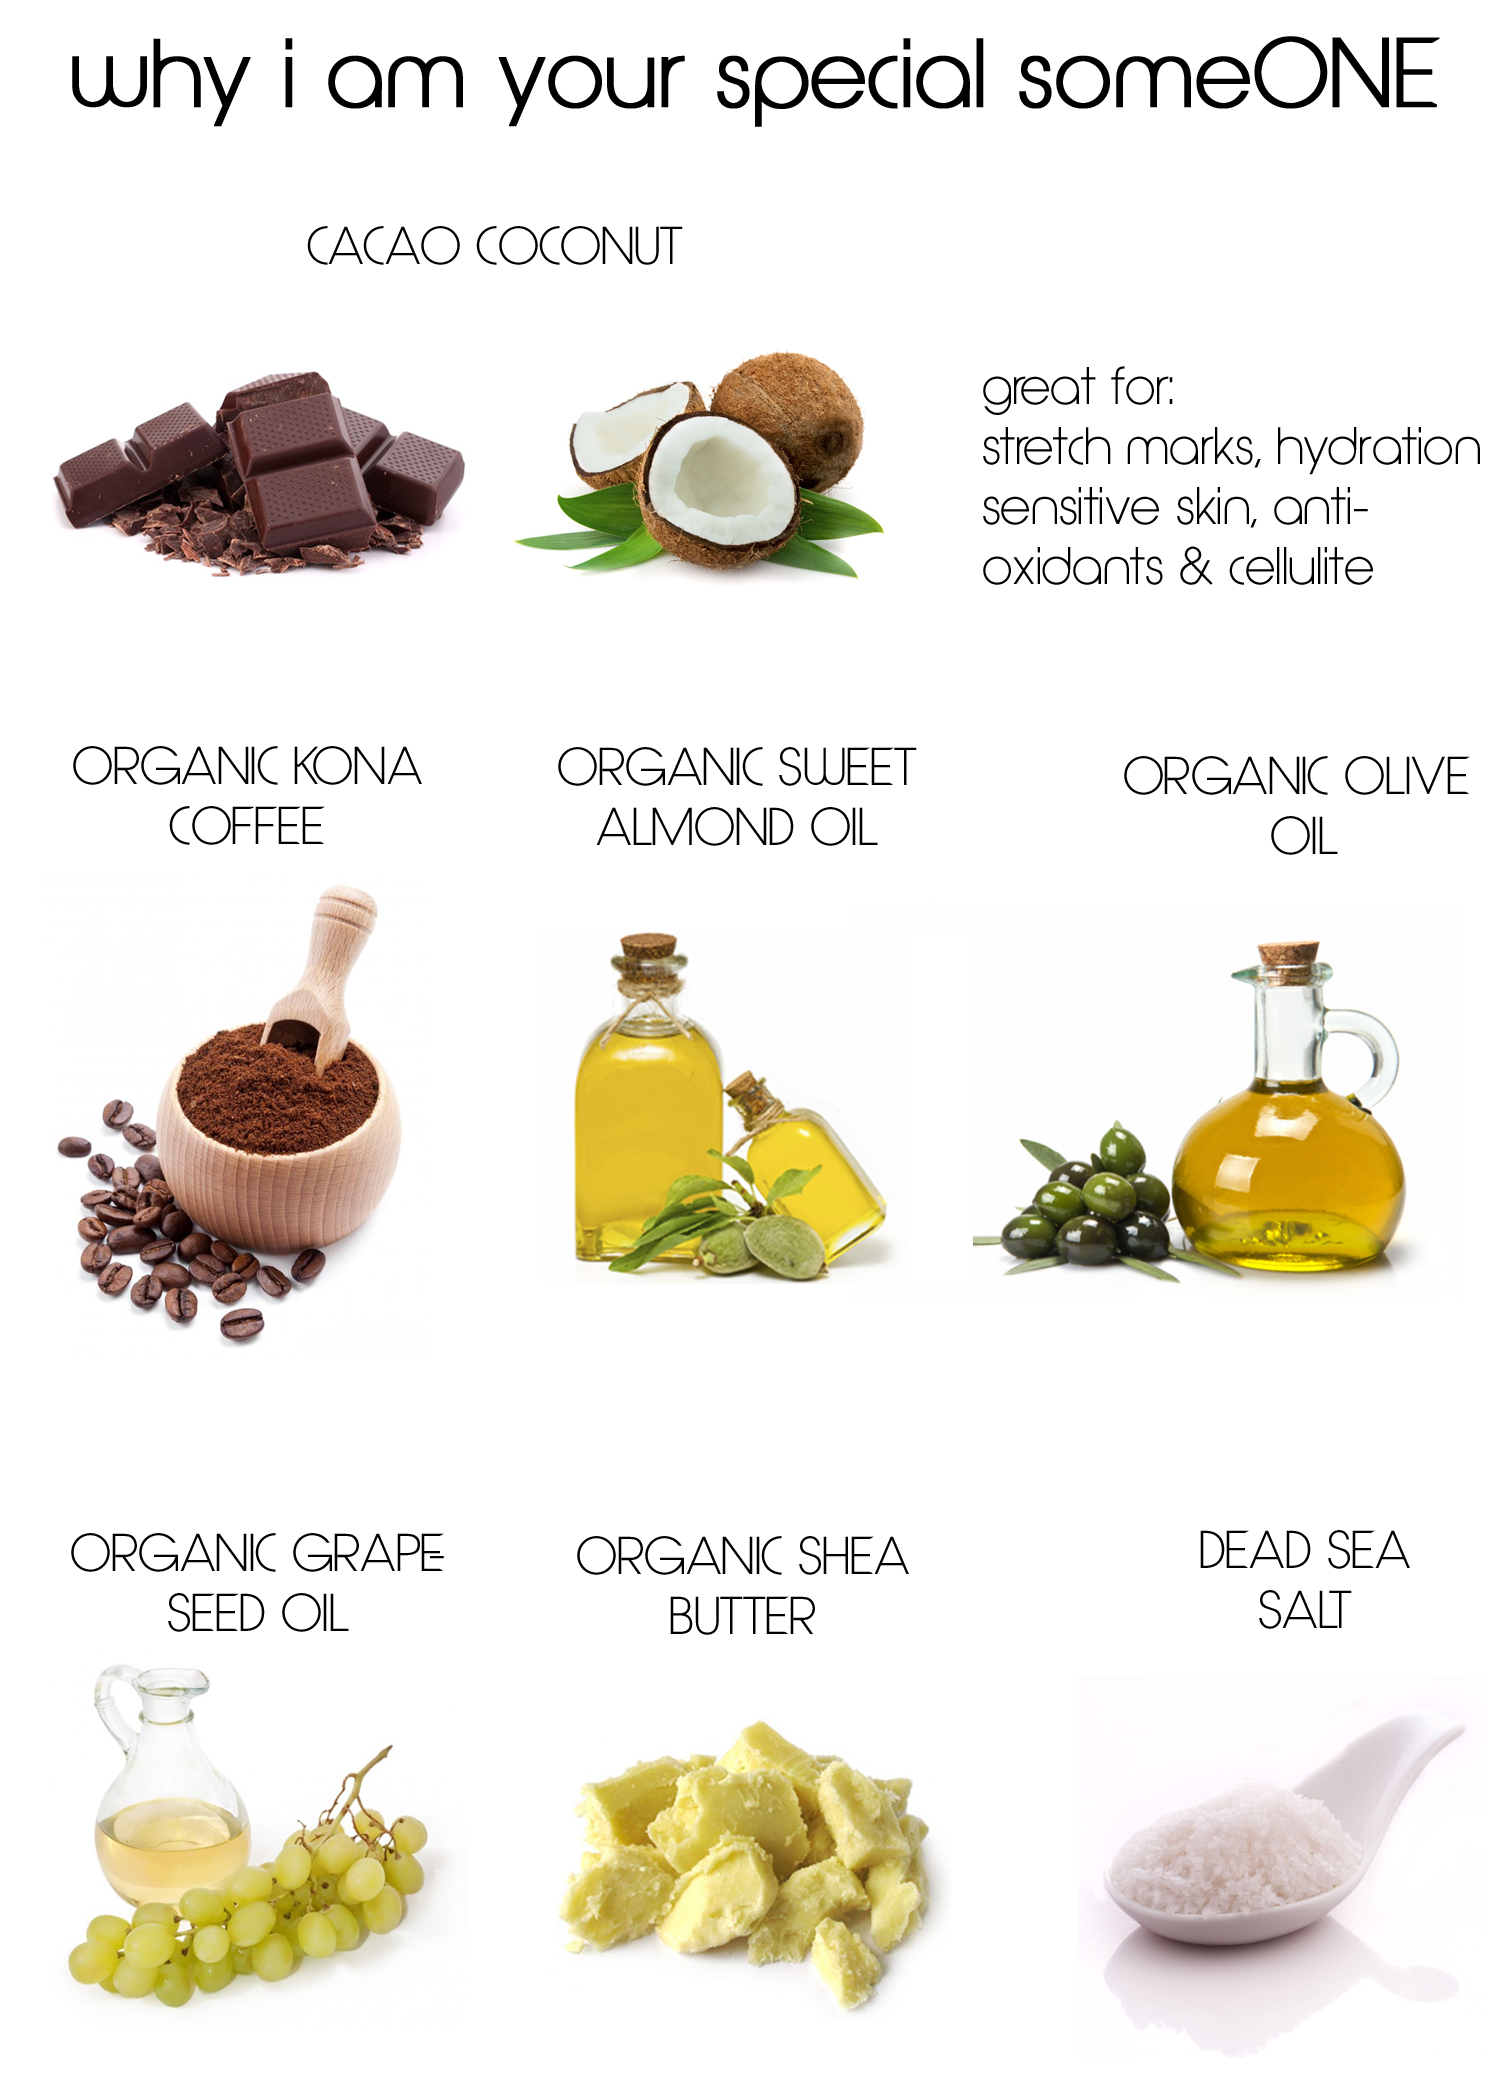 cacao-coconut-ingredients.jpg